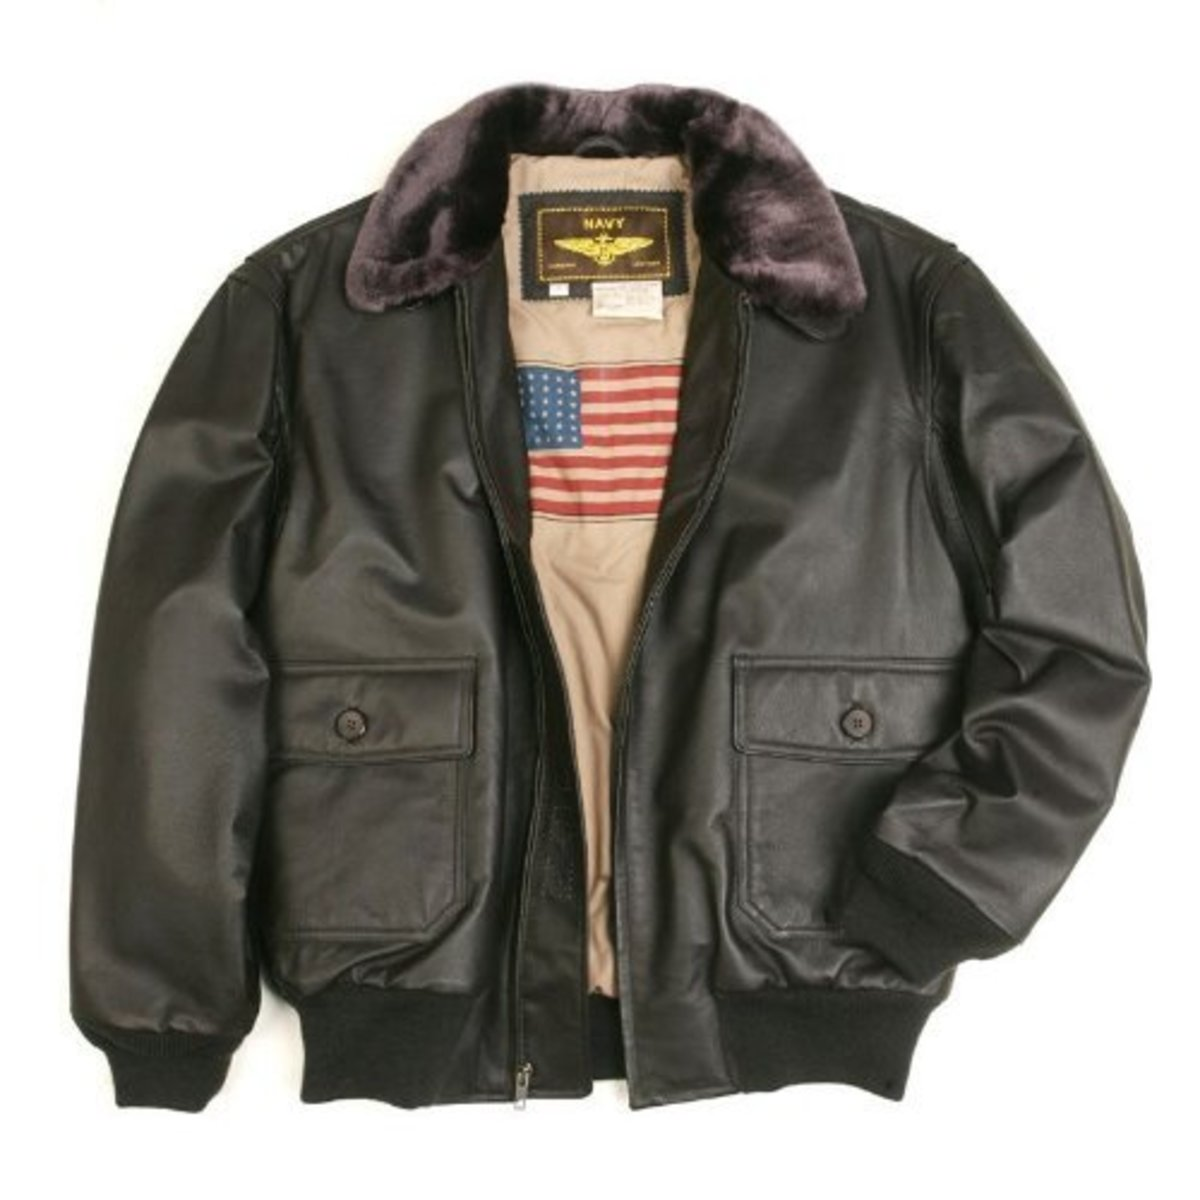 A traditional bomber jacket.